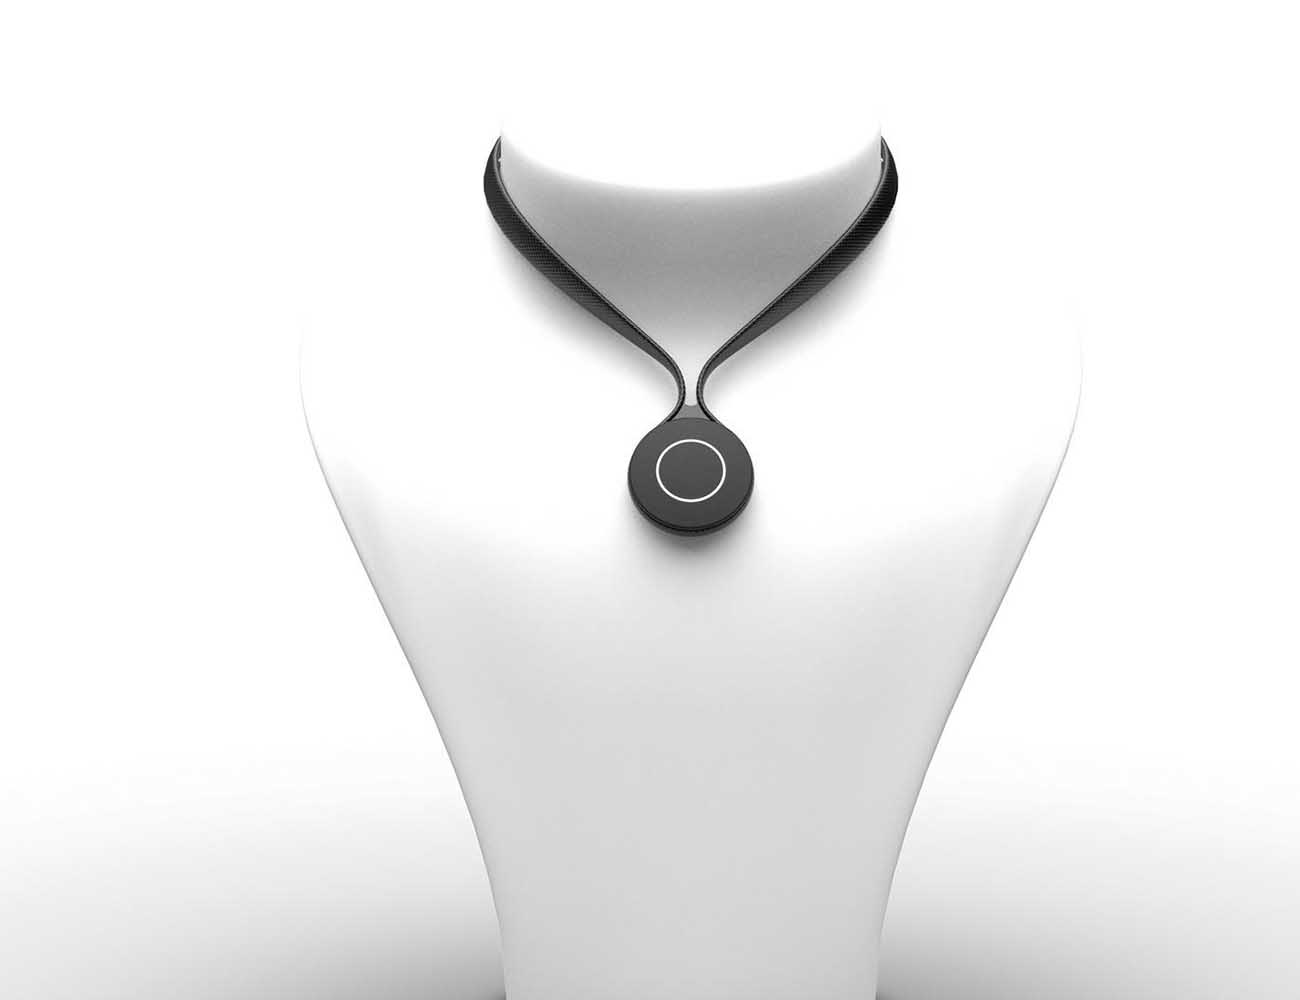 Arc Pendant – Smart Body Monitor with Voice Command